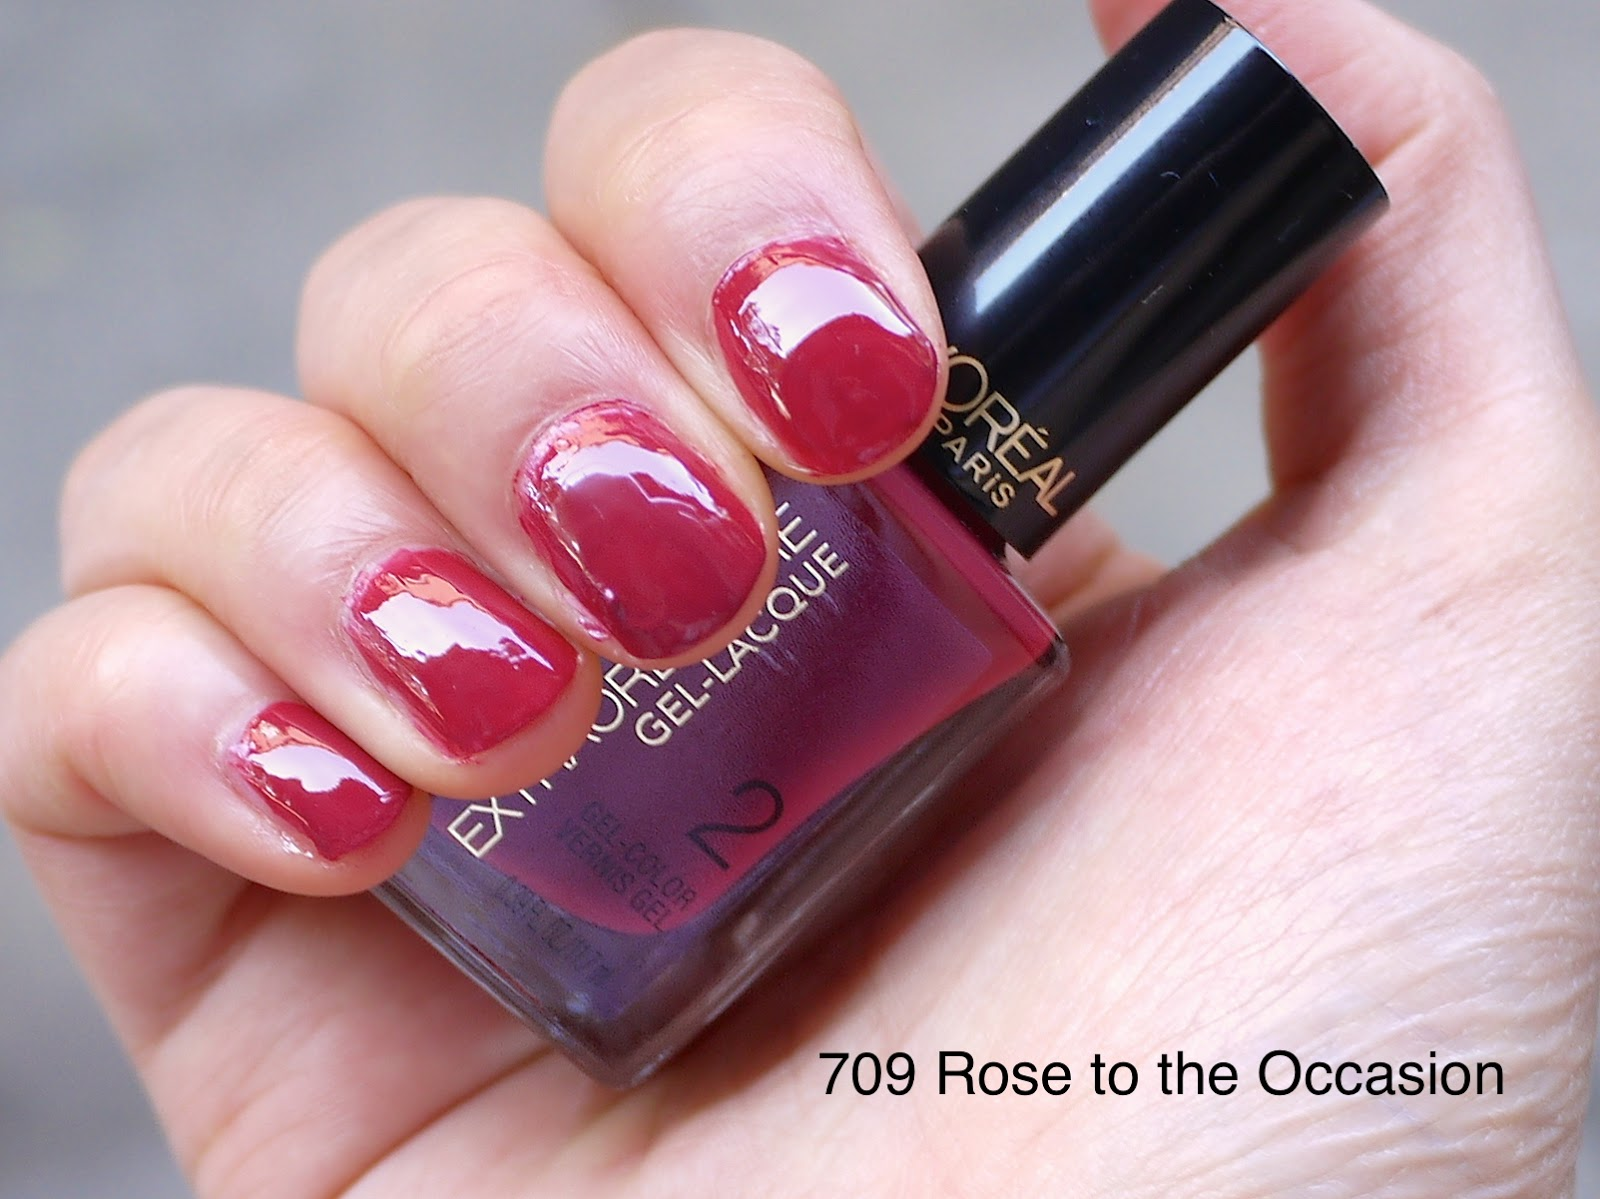 l'oreal extraordinaire gel-lacque 709 rose to the occasion nail swatch